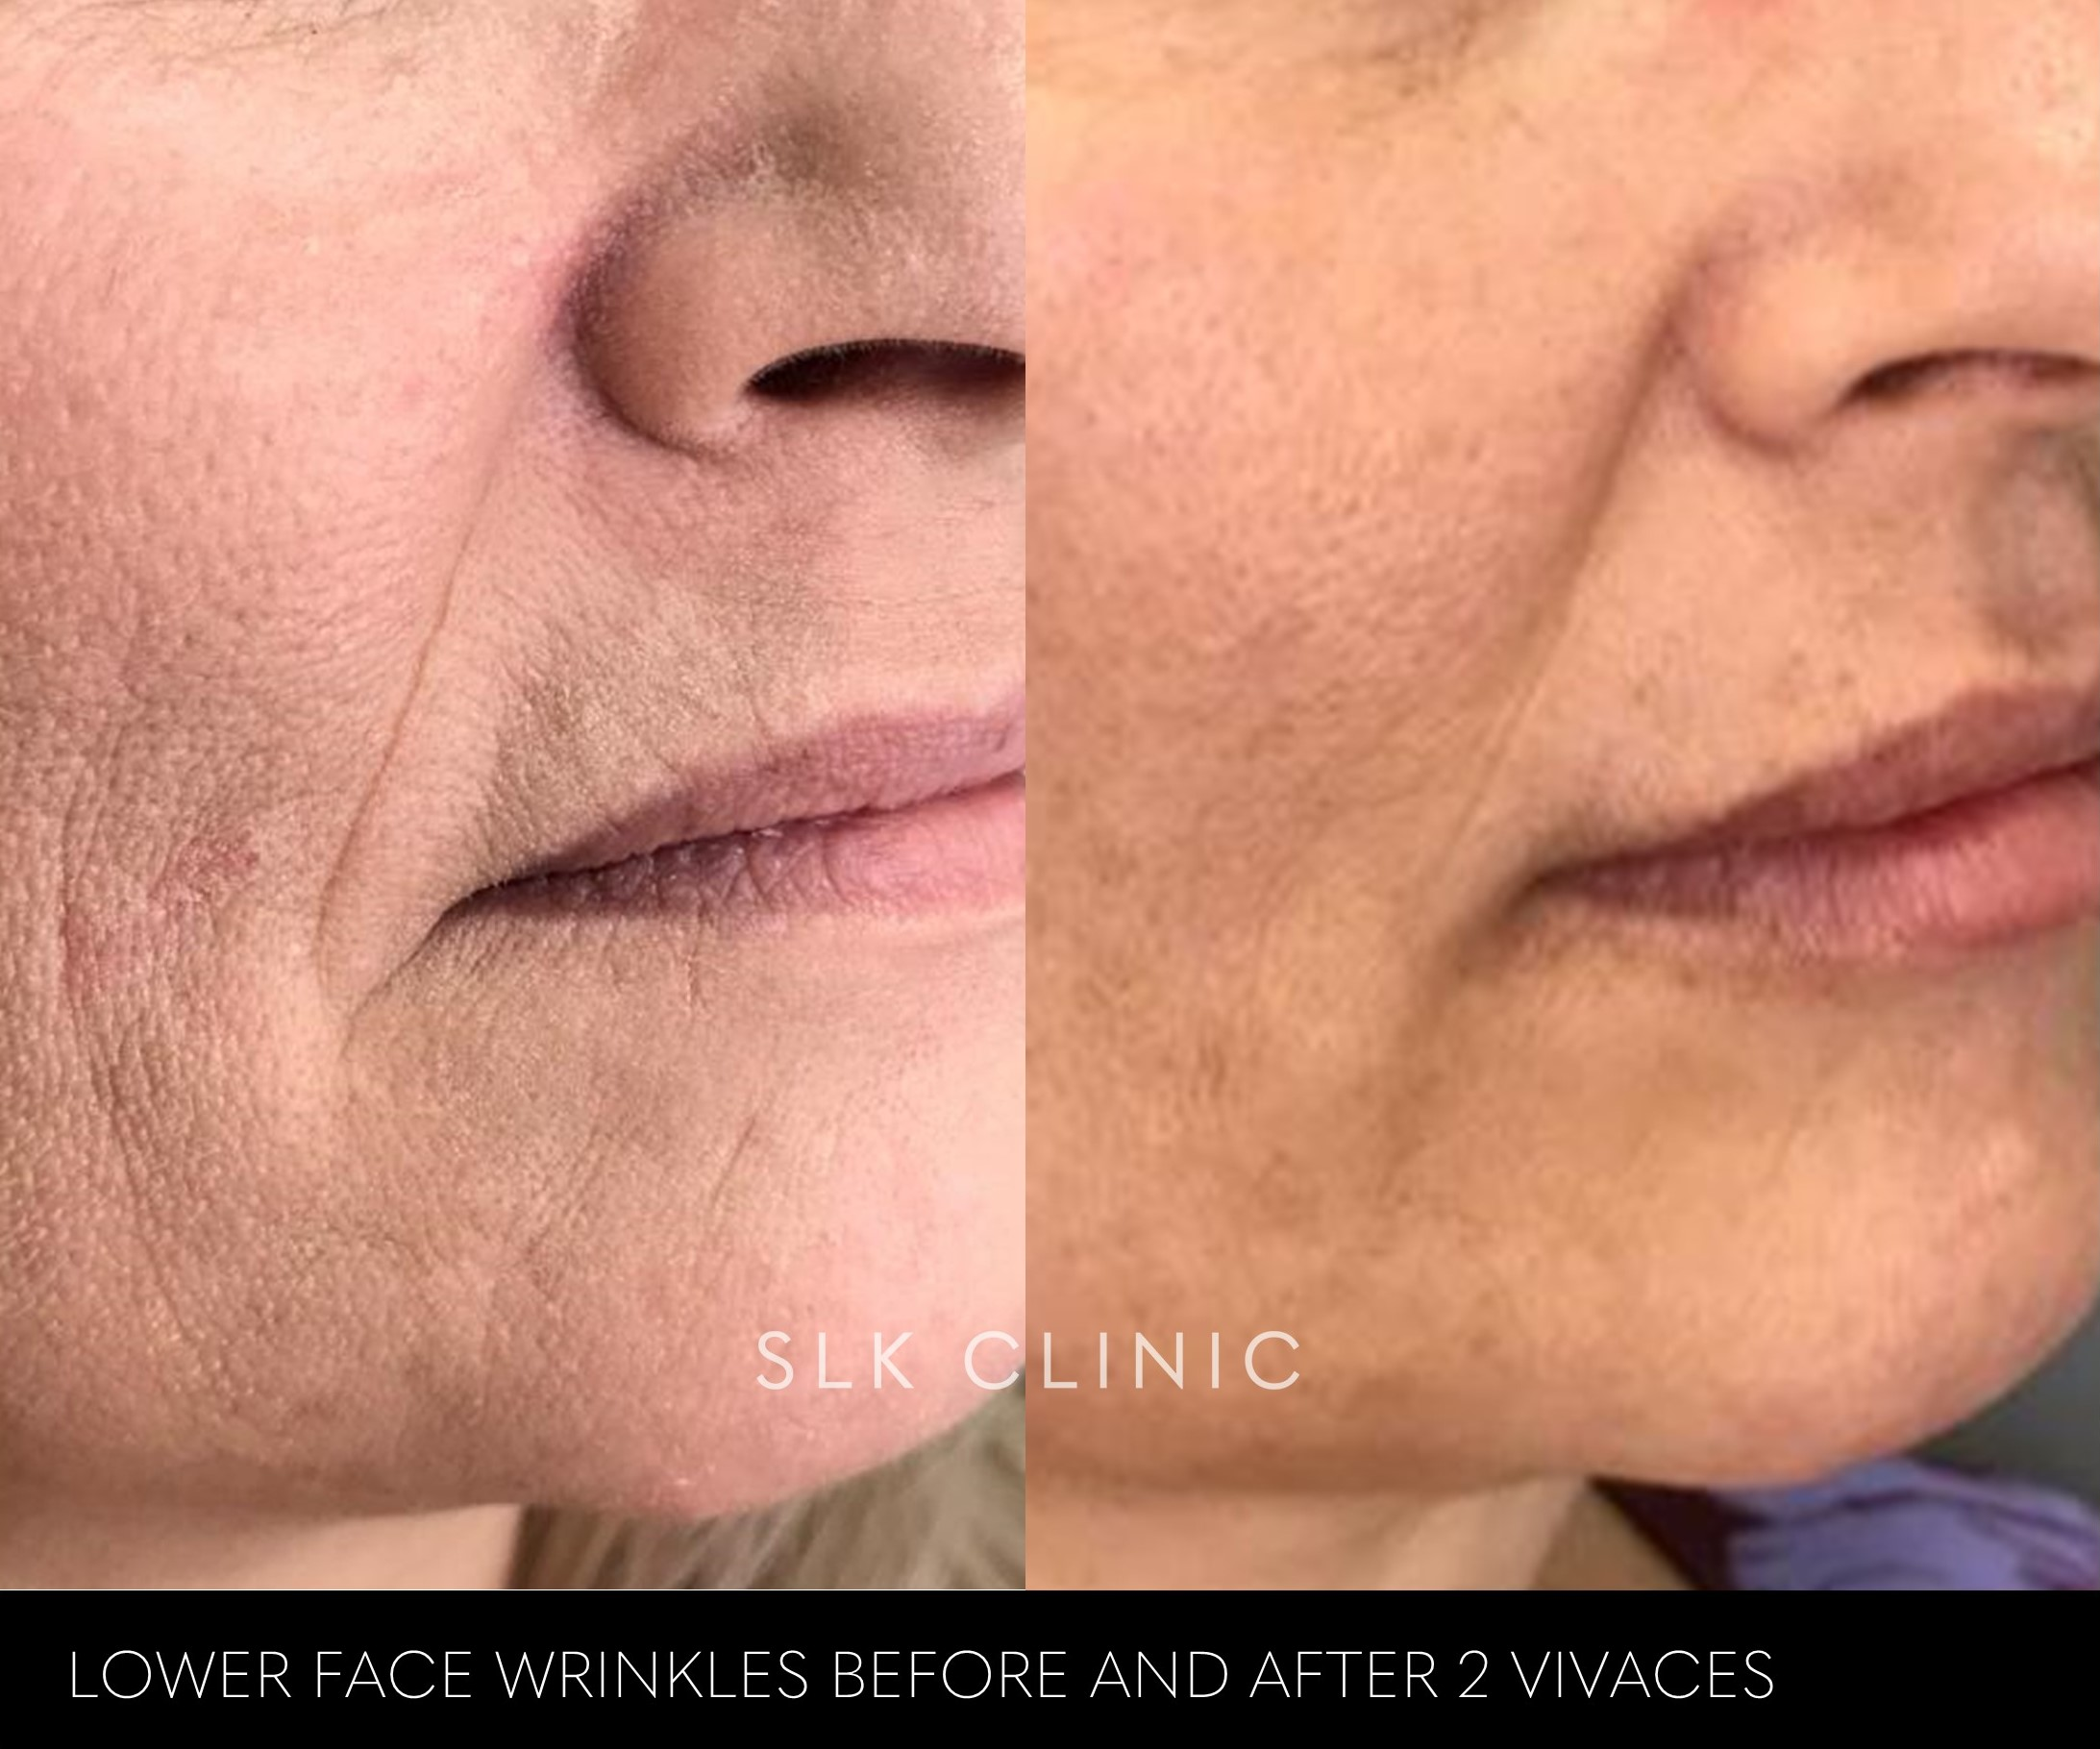 lower face wrinkles and texture before and after 2 vivaces